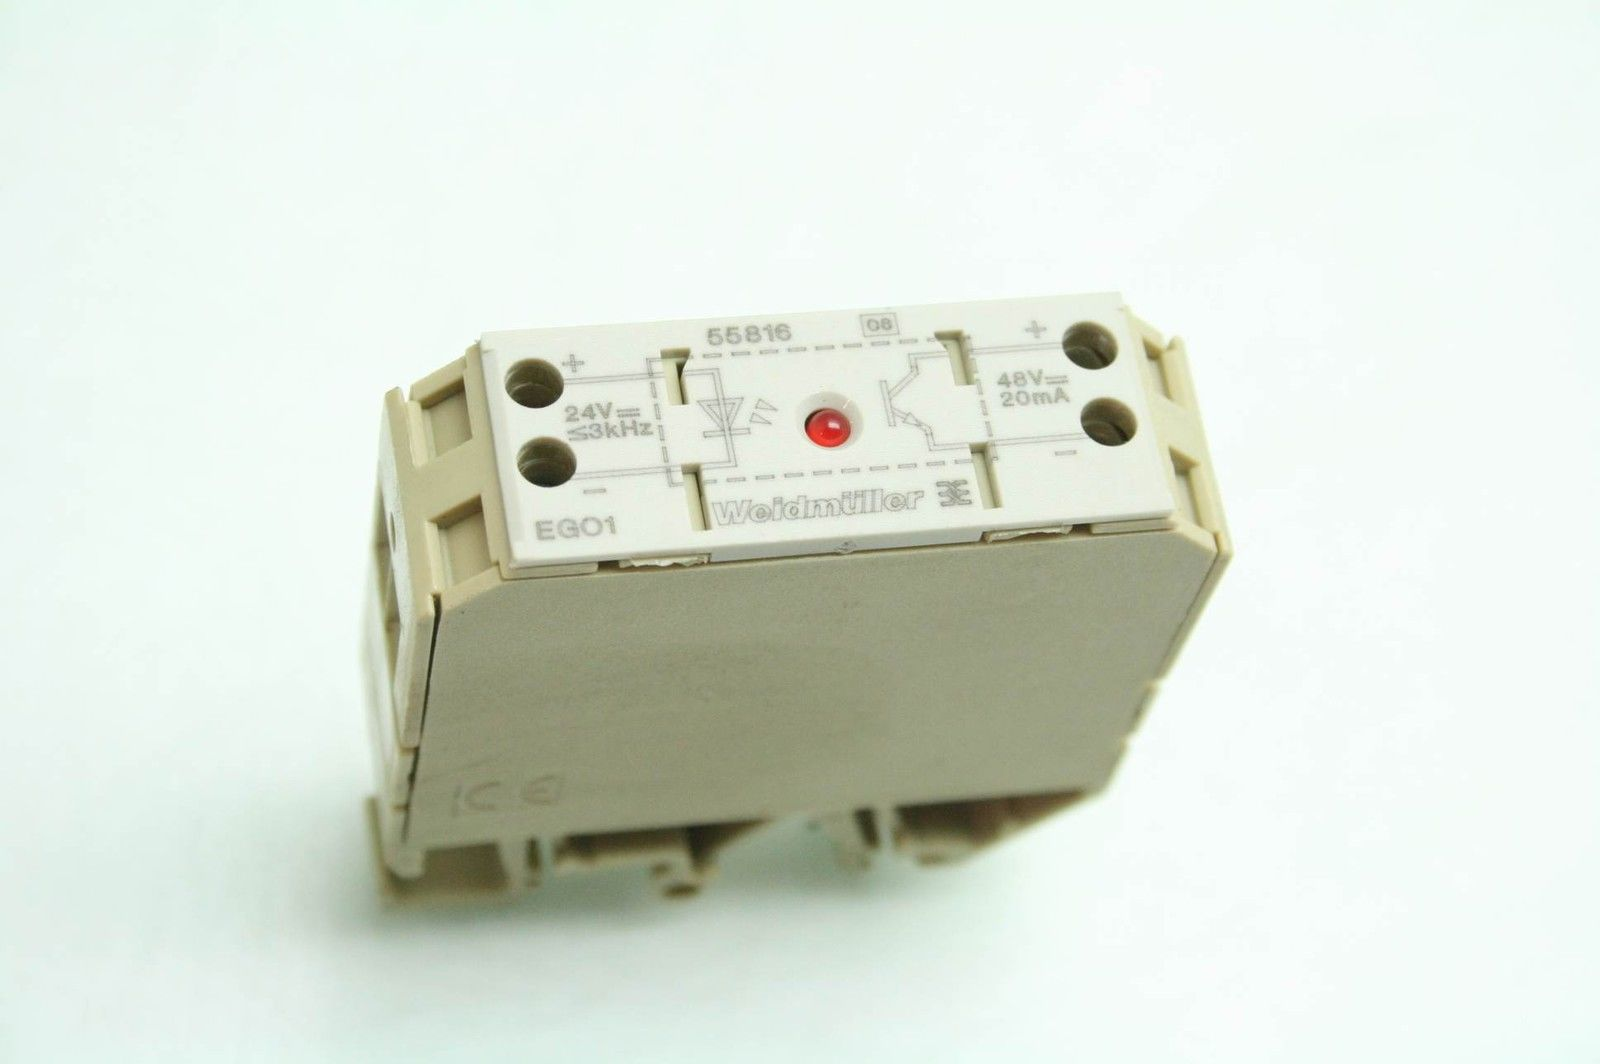 Weidmuller Ego1 55816 High Frequency Solid State Relay 24v